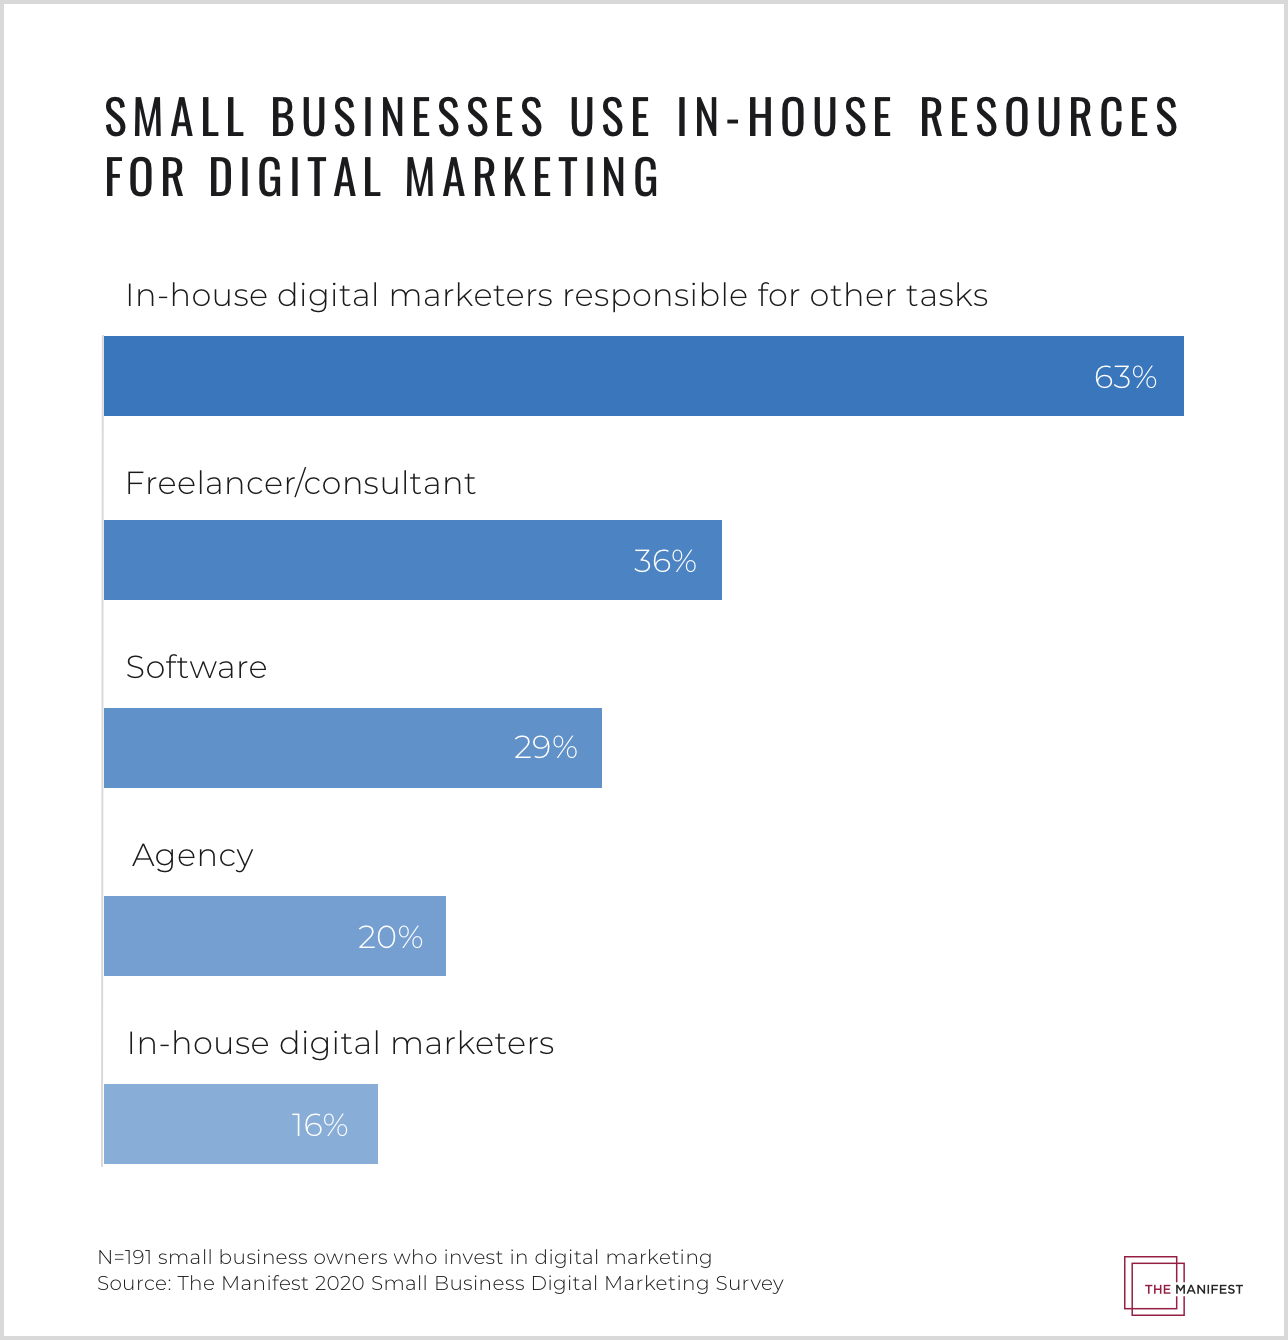 small businesses use in-house resources for digital marketing